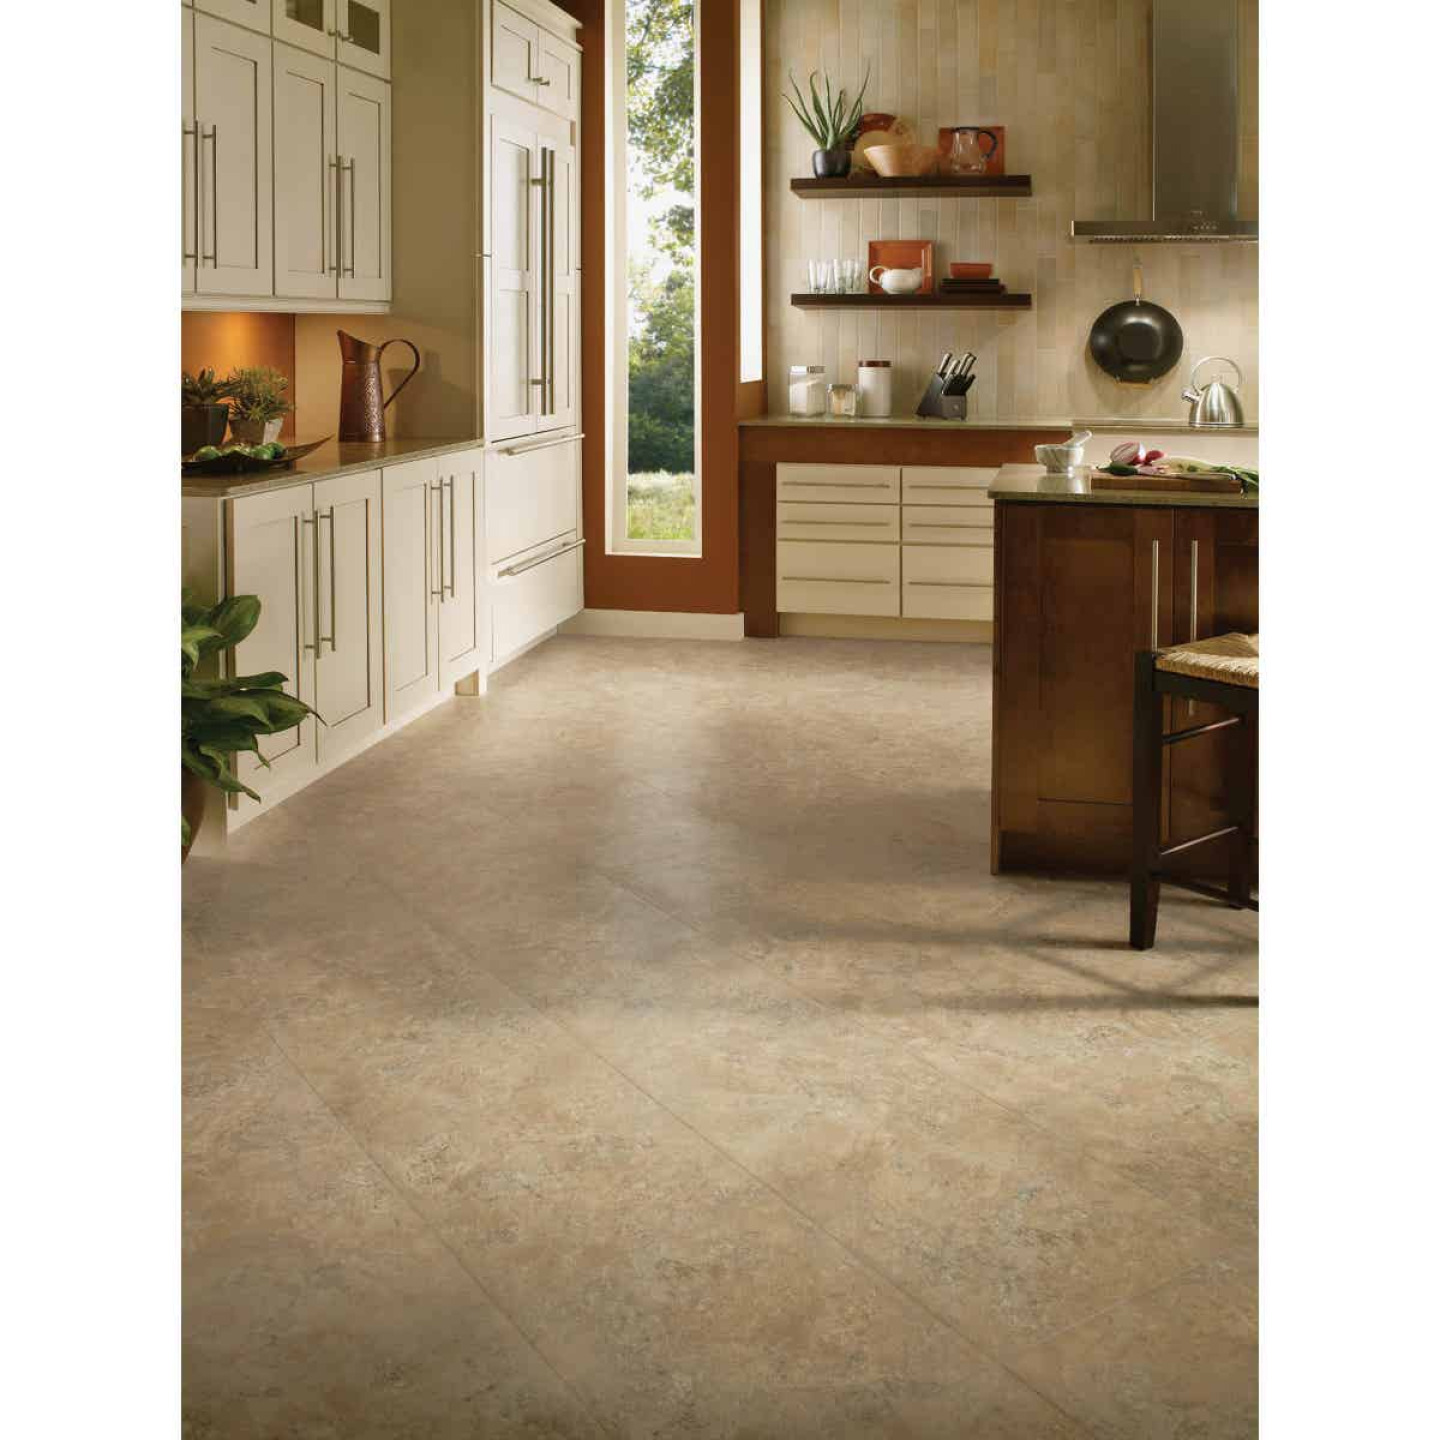 Home Impressions Sand Scape 12 In. x 12 In. Textured Vinyl Floor Tile (30 Sq. Ft./Box) Image 2